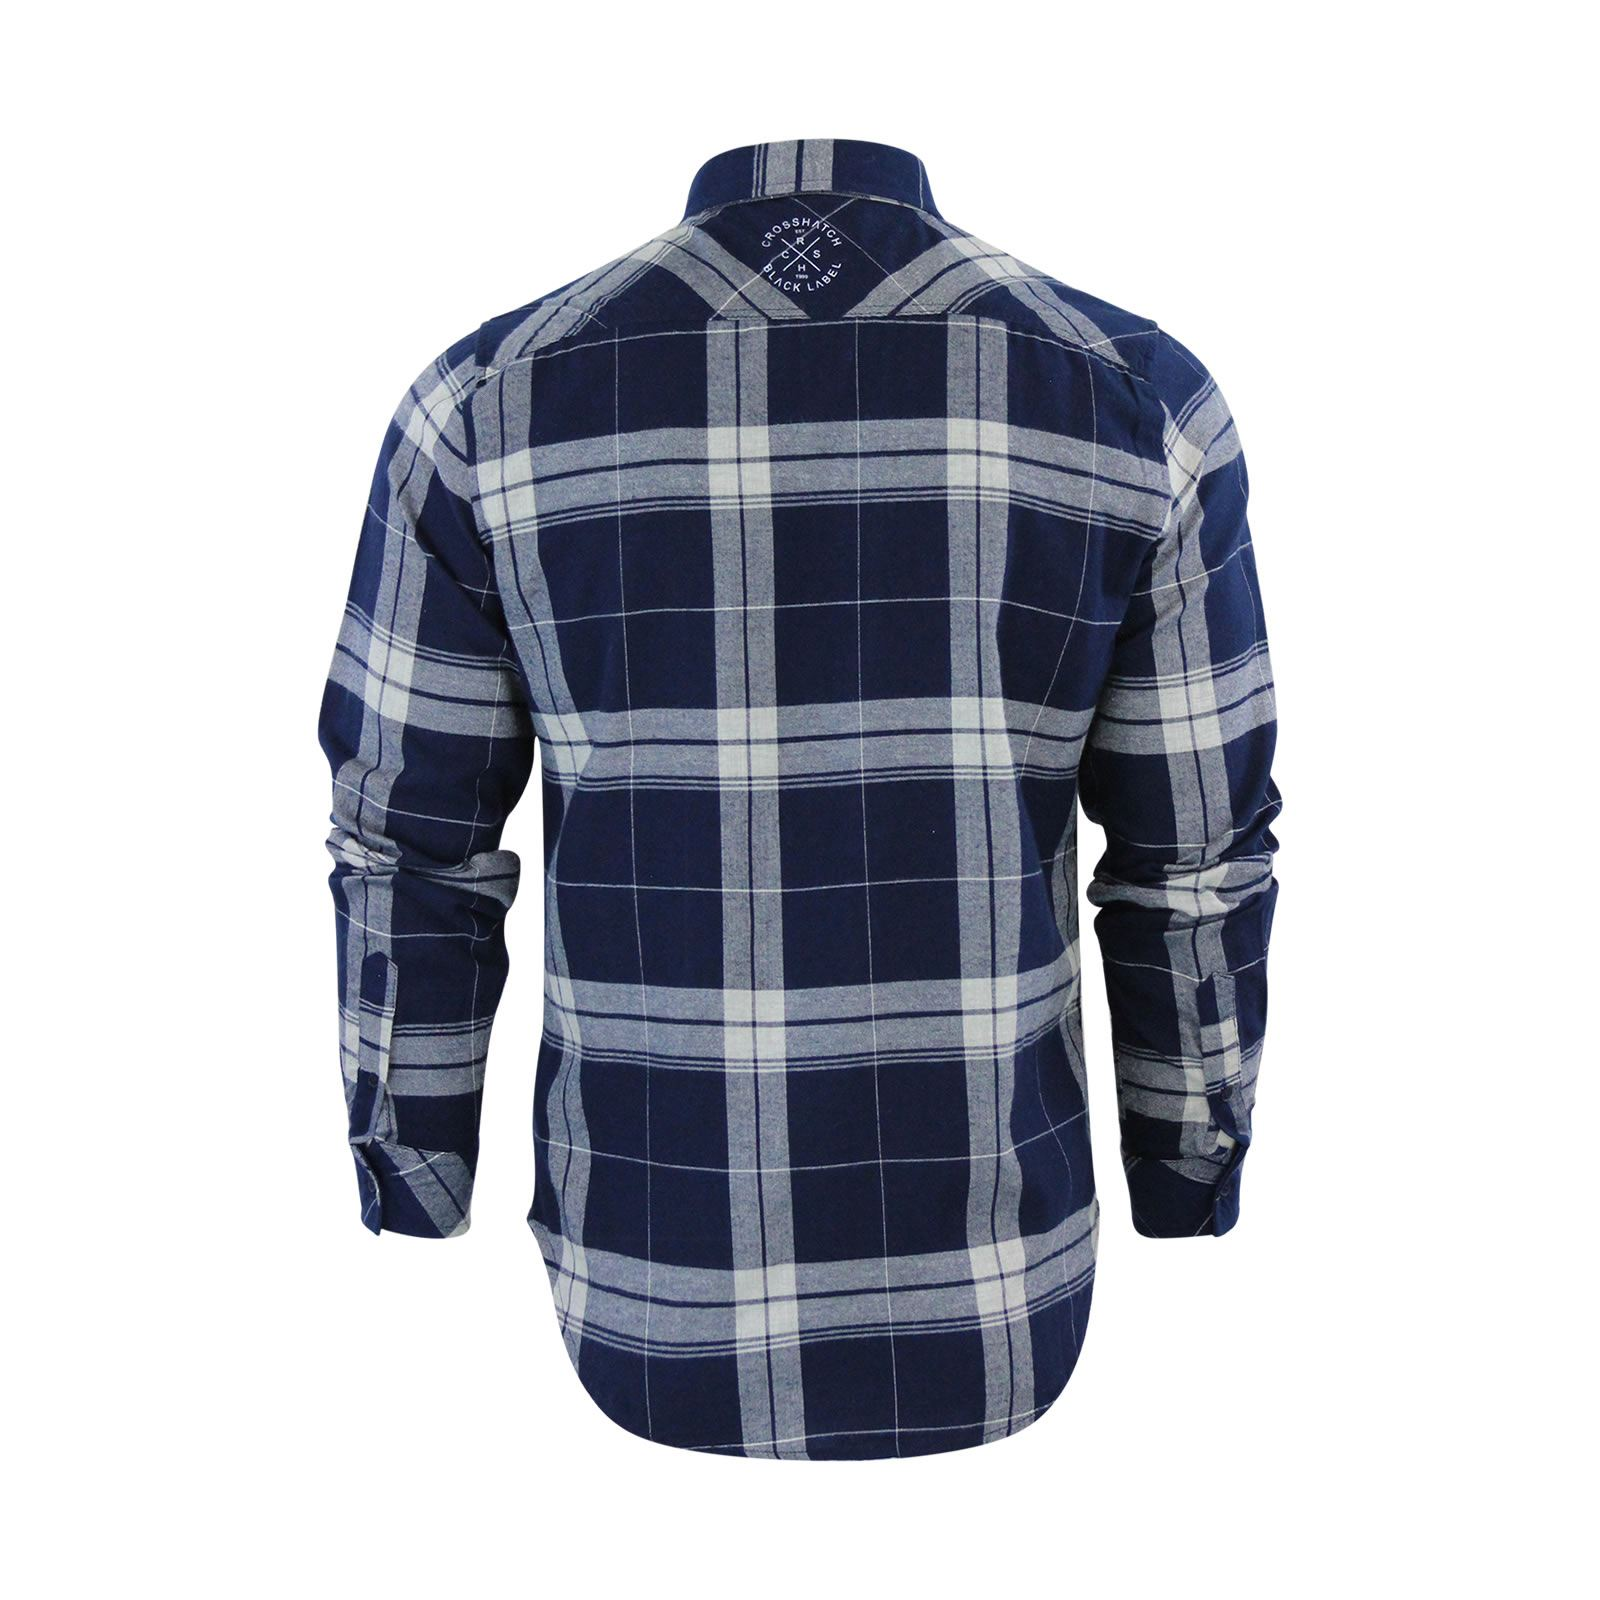 Crosshatch-Mitty-Homme-Chemise-a-carreaux-coton-a-col-a-manches-longues-Top-Casual miniature 6